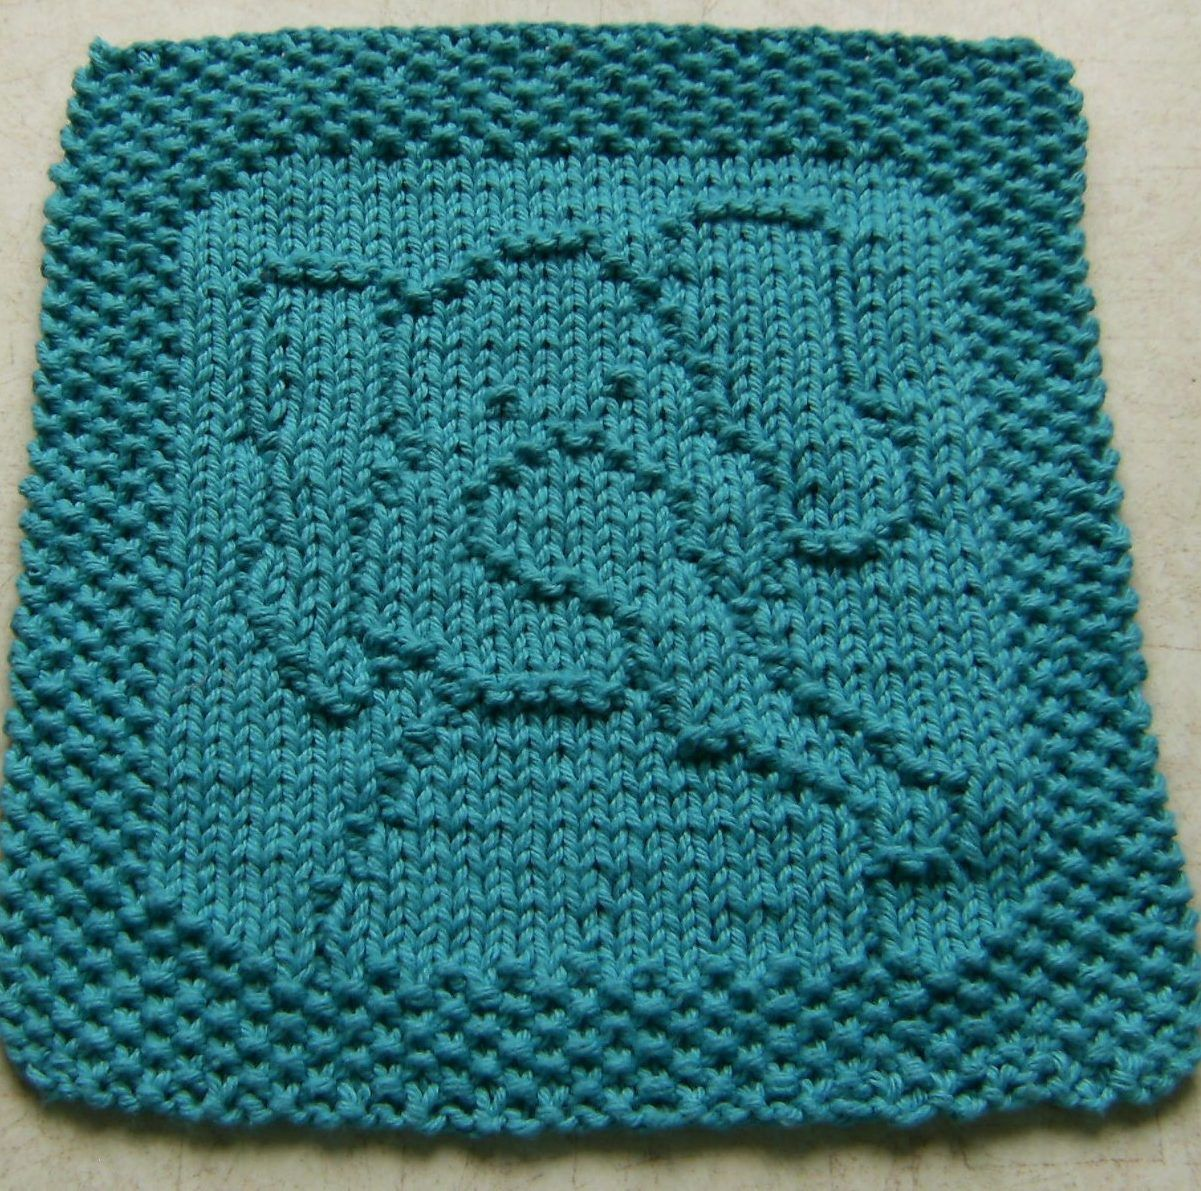 Free knitting pattern for peanut elephant cloth easy cloth free knitting pattern for peanut elephant cloth easy cloth designed by elaine fitzpatrick bankloansurffo Choice Image